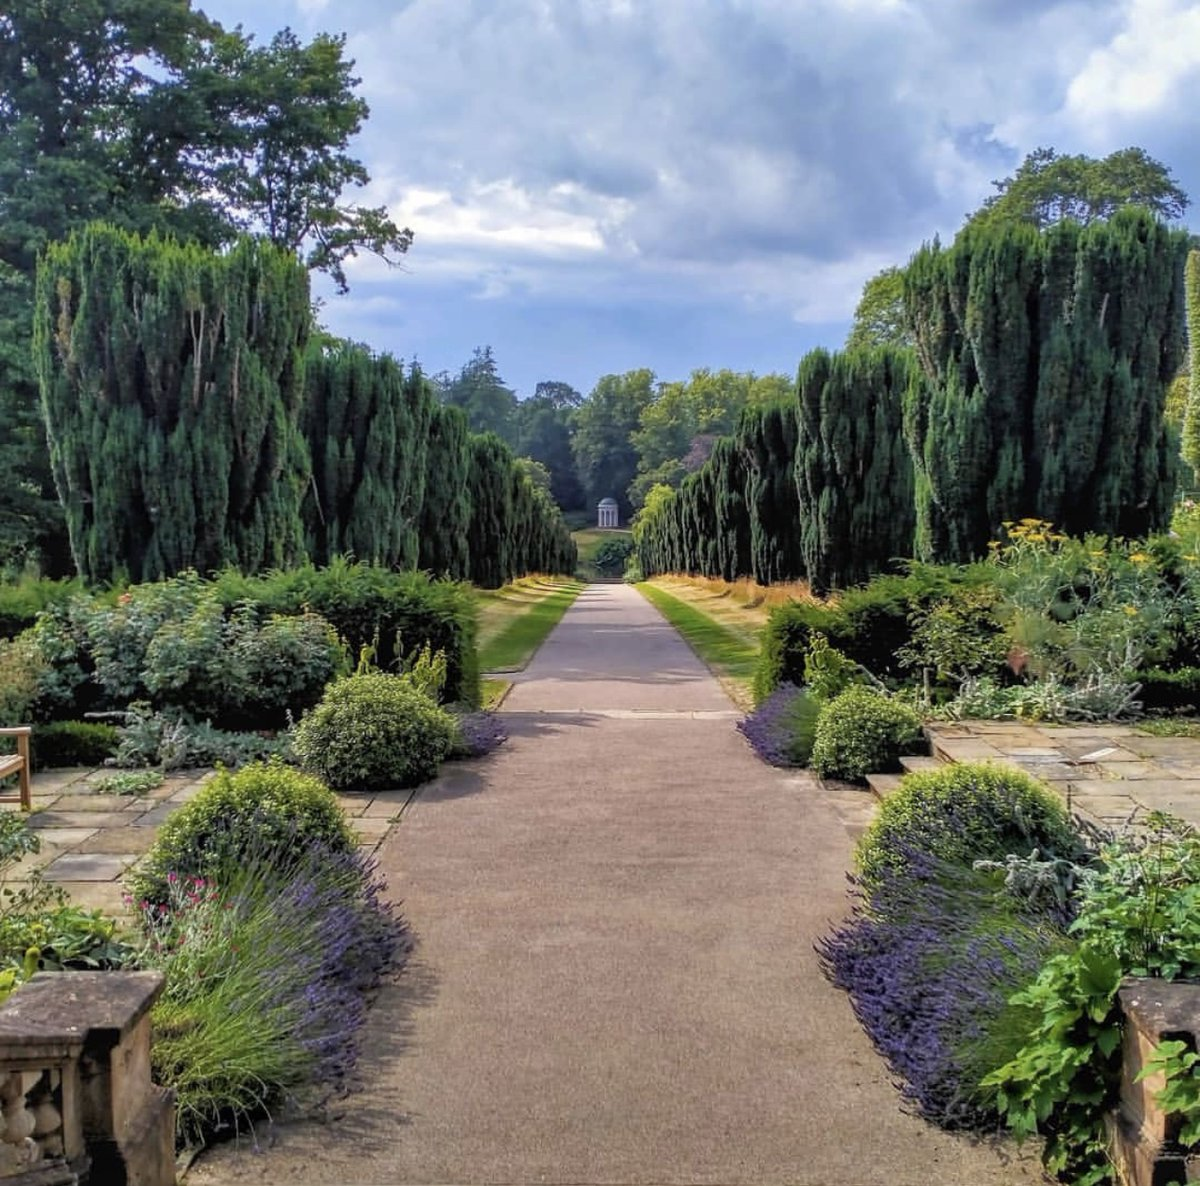 Sunday stroll anyone? @HillsCastle's beautiful gardens are the perfect place for a leisurely weekend wander 🥾 📸 Thanks to thelittlewashinglinehouse on Instagram for sharing this picture-perfect #PalacePhoto of the view down Yew Tree Walk to Lady Alice's Temple.